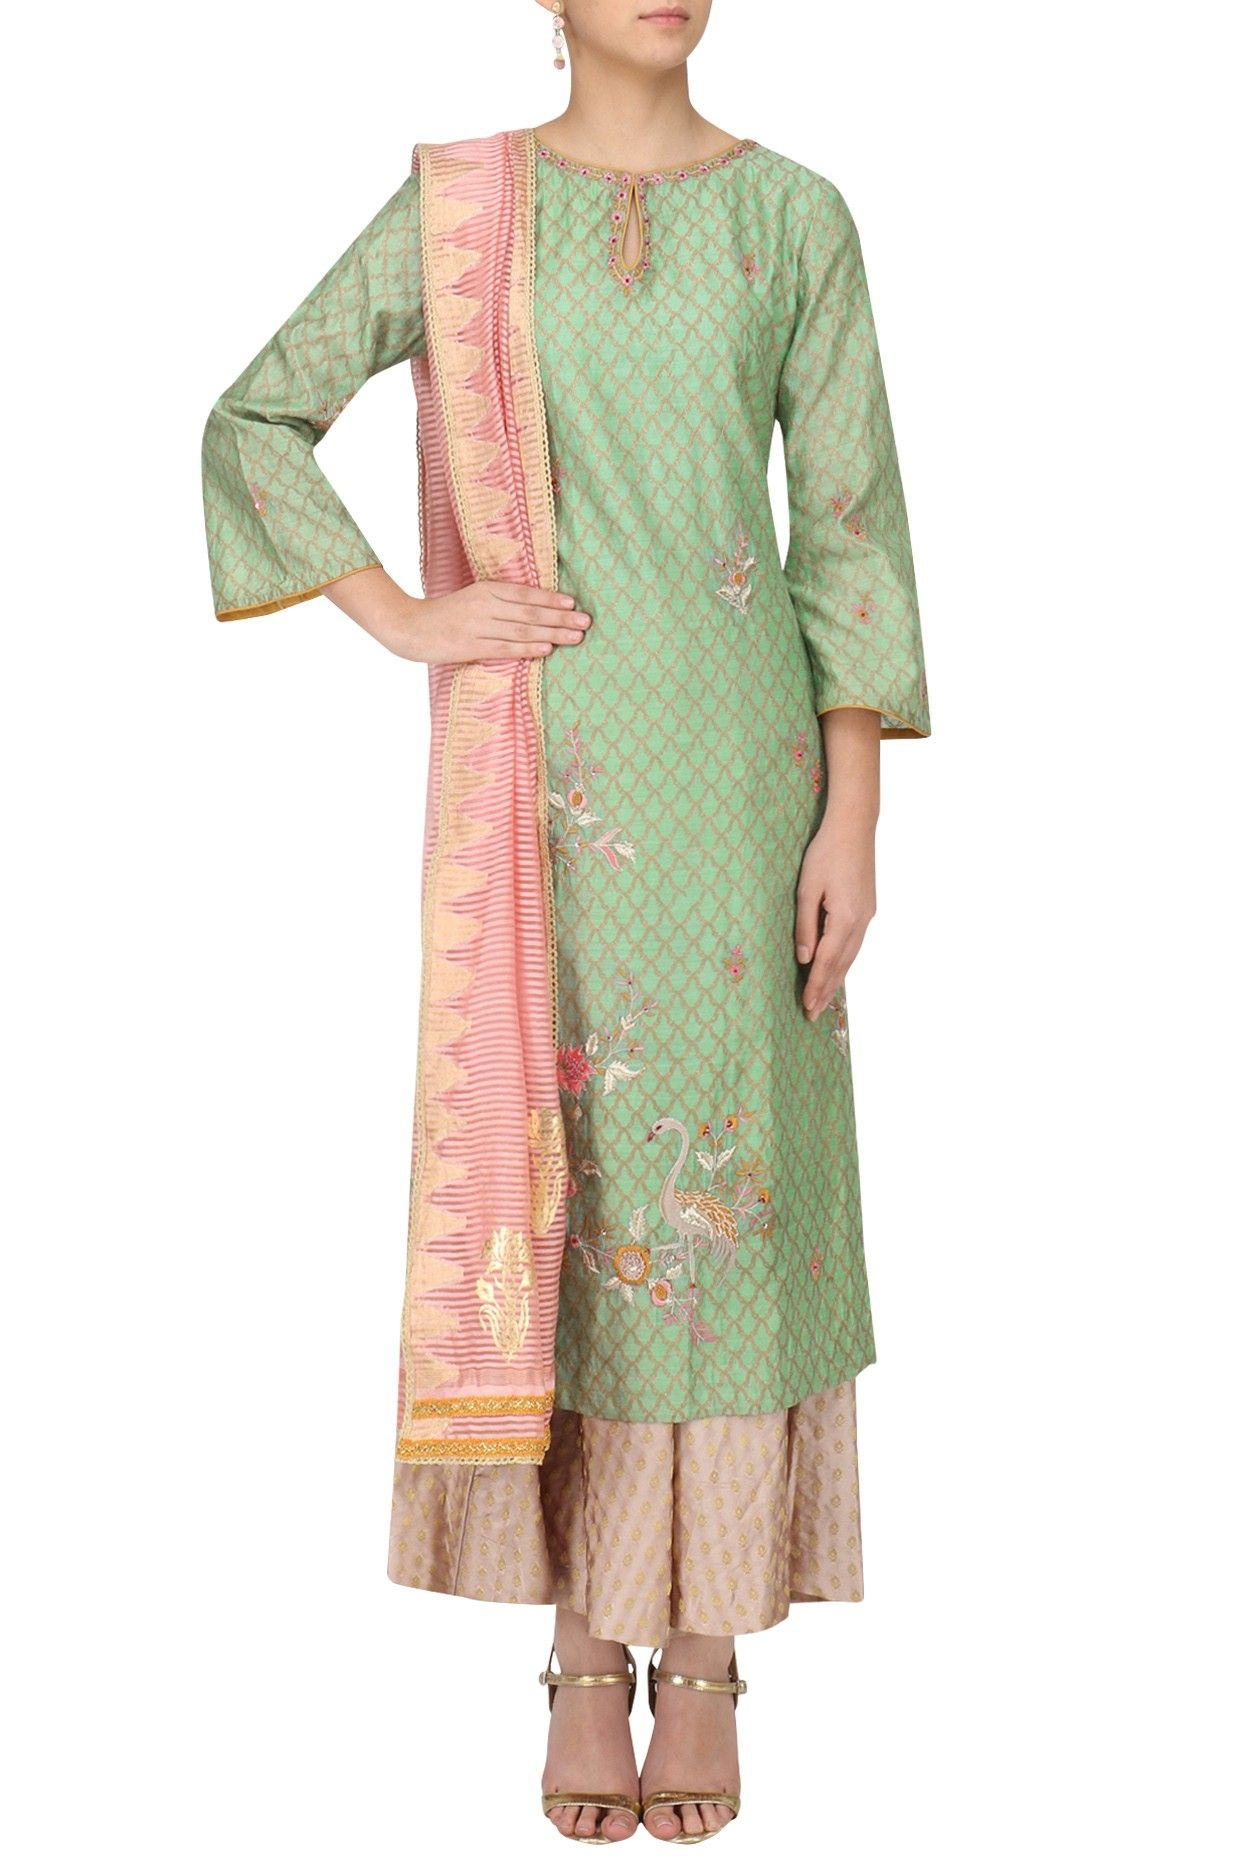 196af405244120 Mint green embroidered kurta with palazzo pants set available only at  Pernia's Pop Up Shop.